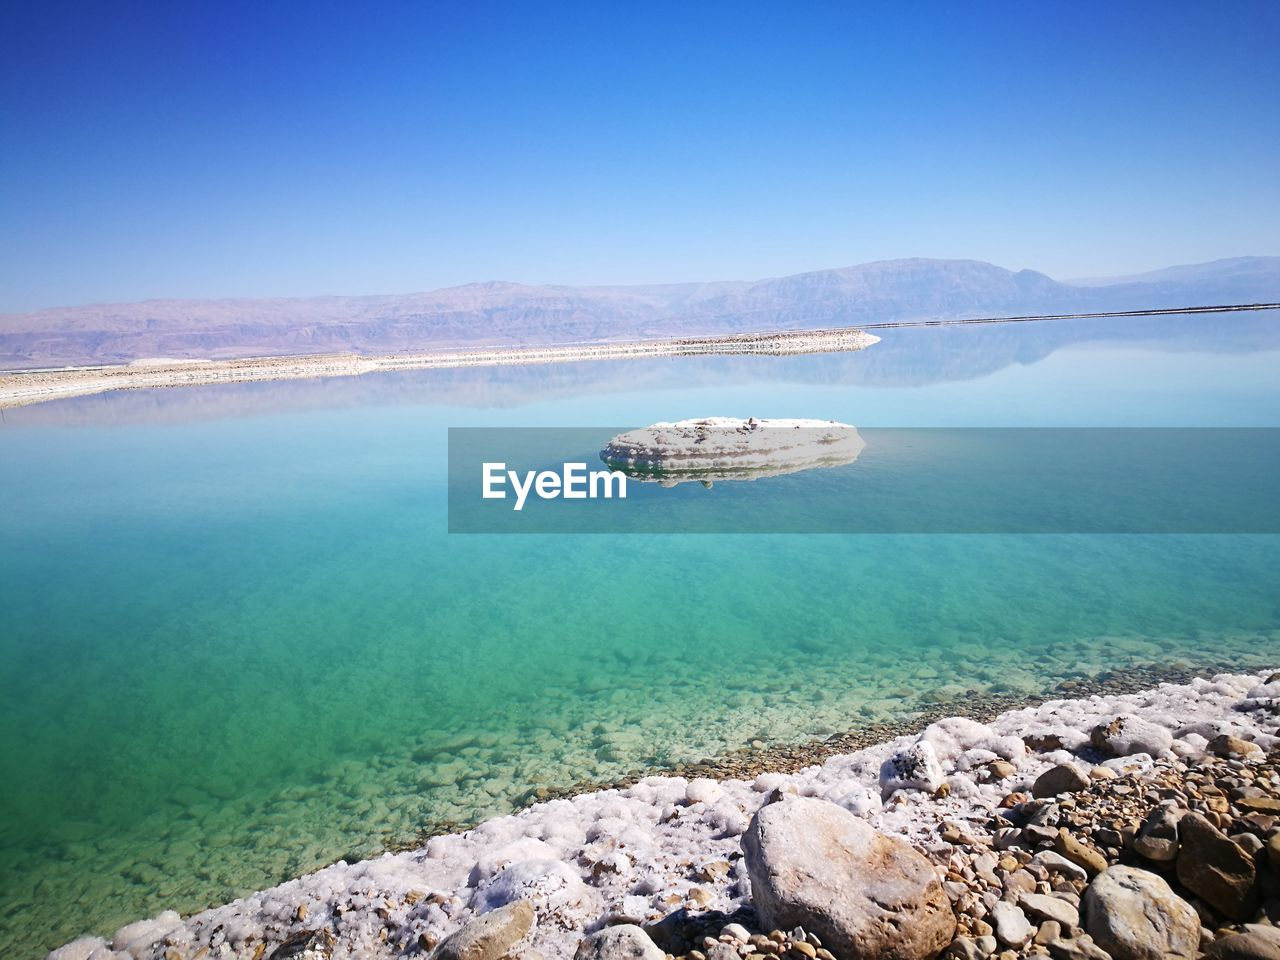 water, beauty in nature, scenics - nature, tranquil scene, sky, blue, tranquility, rock, solid, rock - object, nature, sea, day, clear sky, no people, land, idyllic, non-urban scene, copy space, outdoors, turquoise colored, shallow